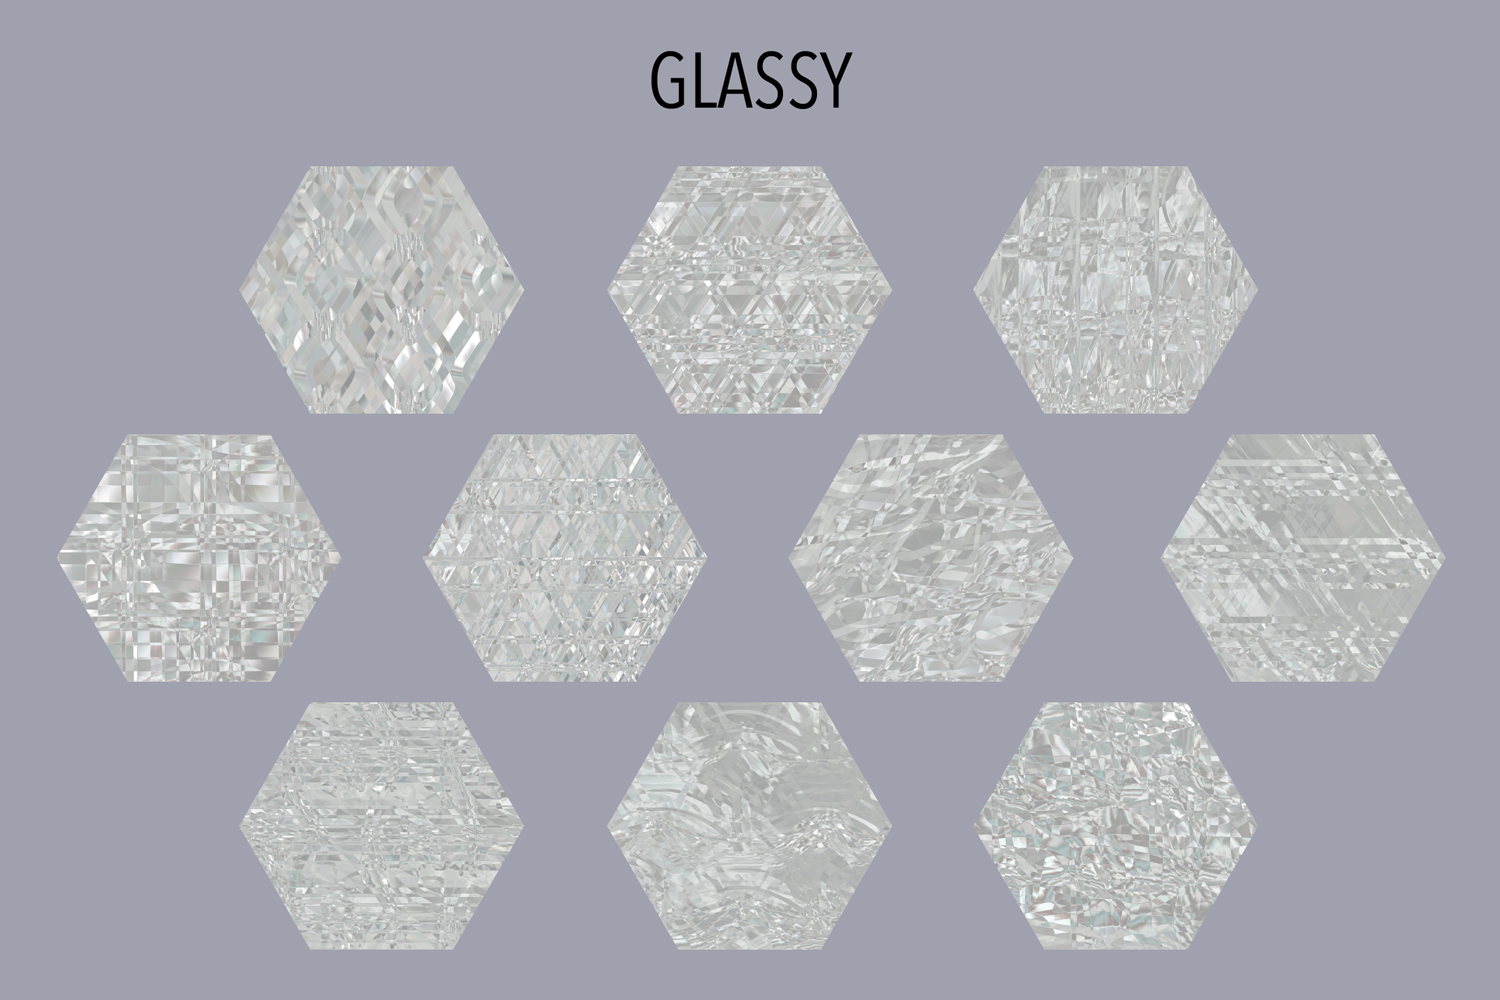 Glassy Textures Graphic Downloadable Digital File